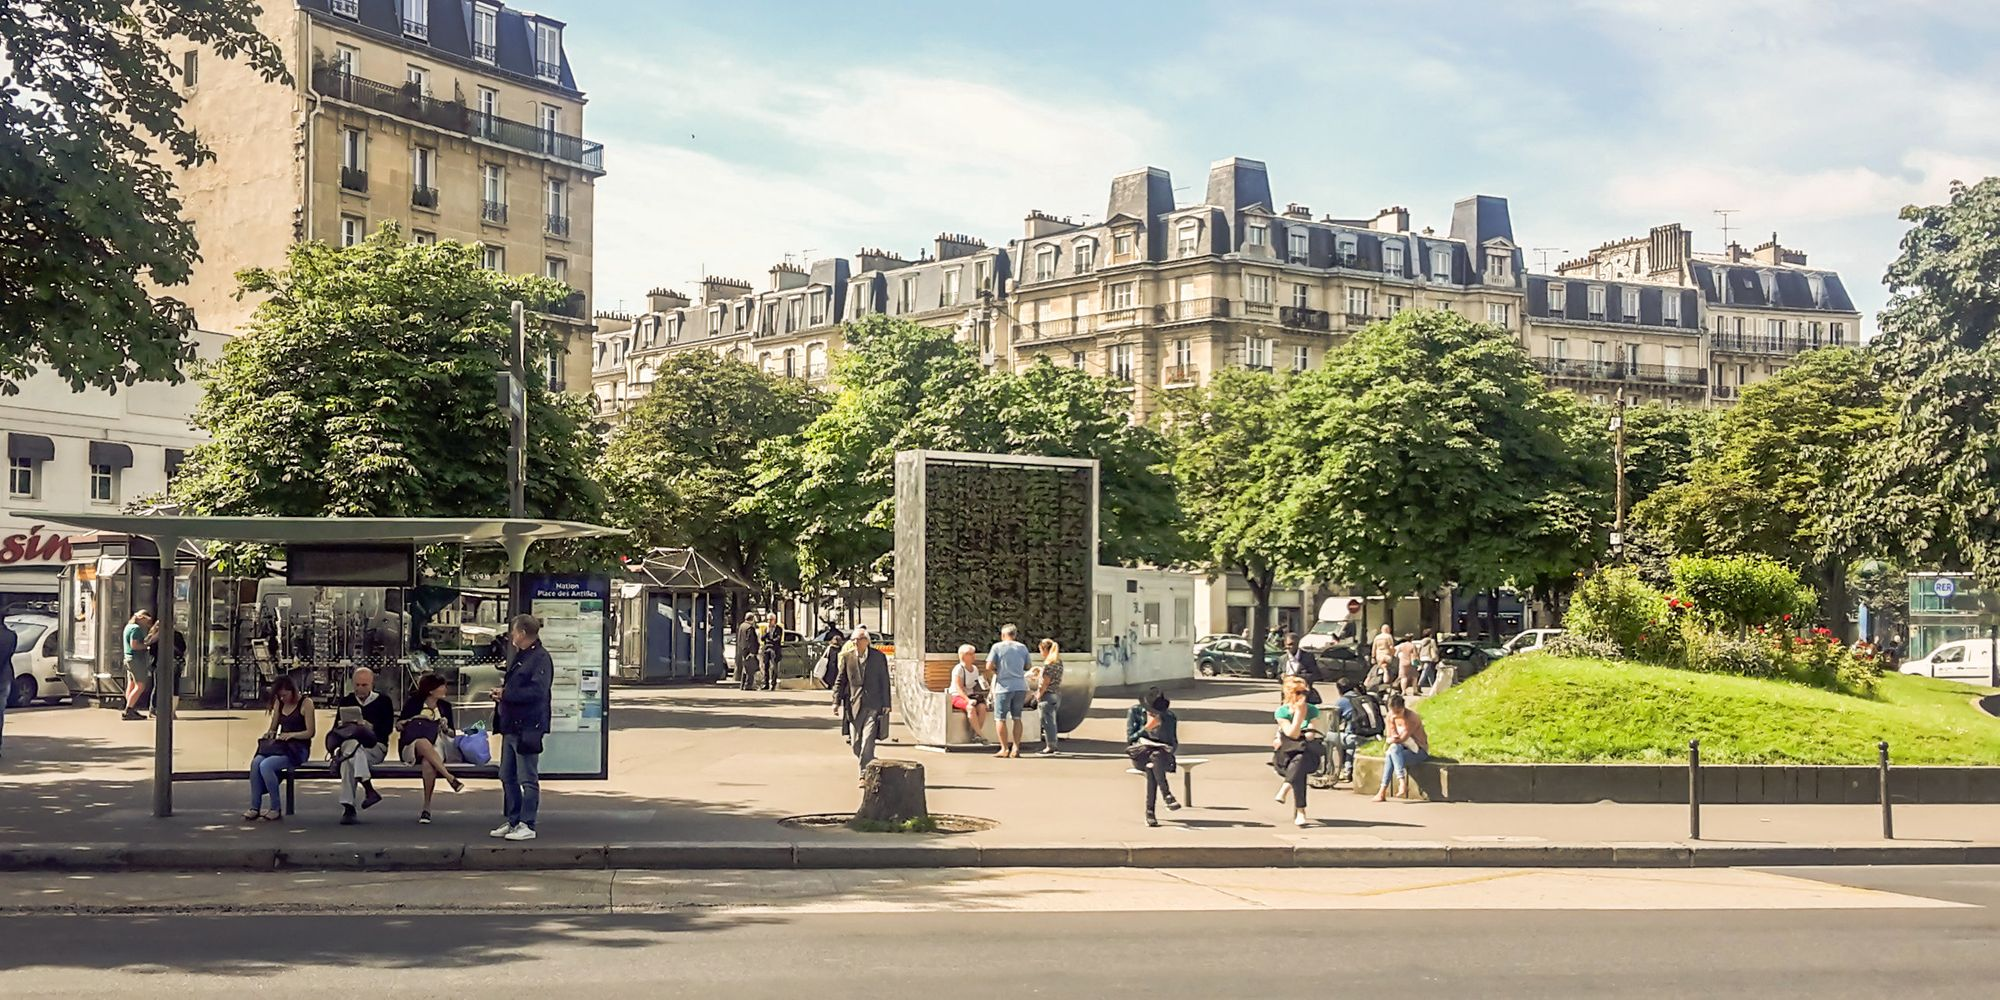 smart 39 trees 39 piloted in paris in a bid to curb pollution crisis huffpost uk. Black Bedroom Furniture Sets. Home Design Ideas